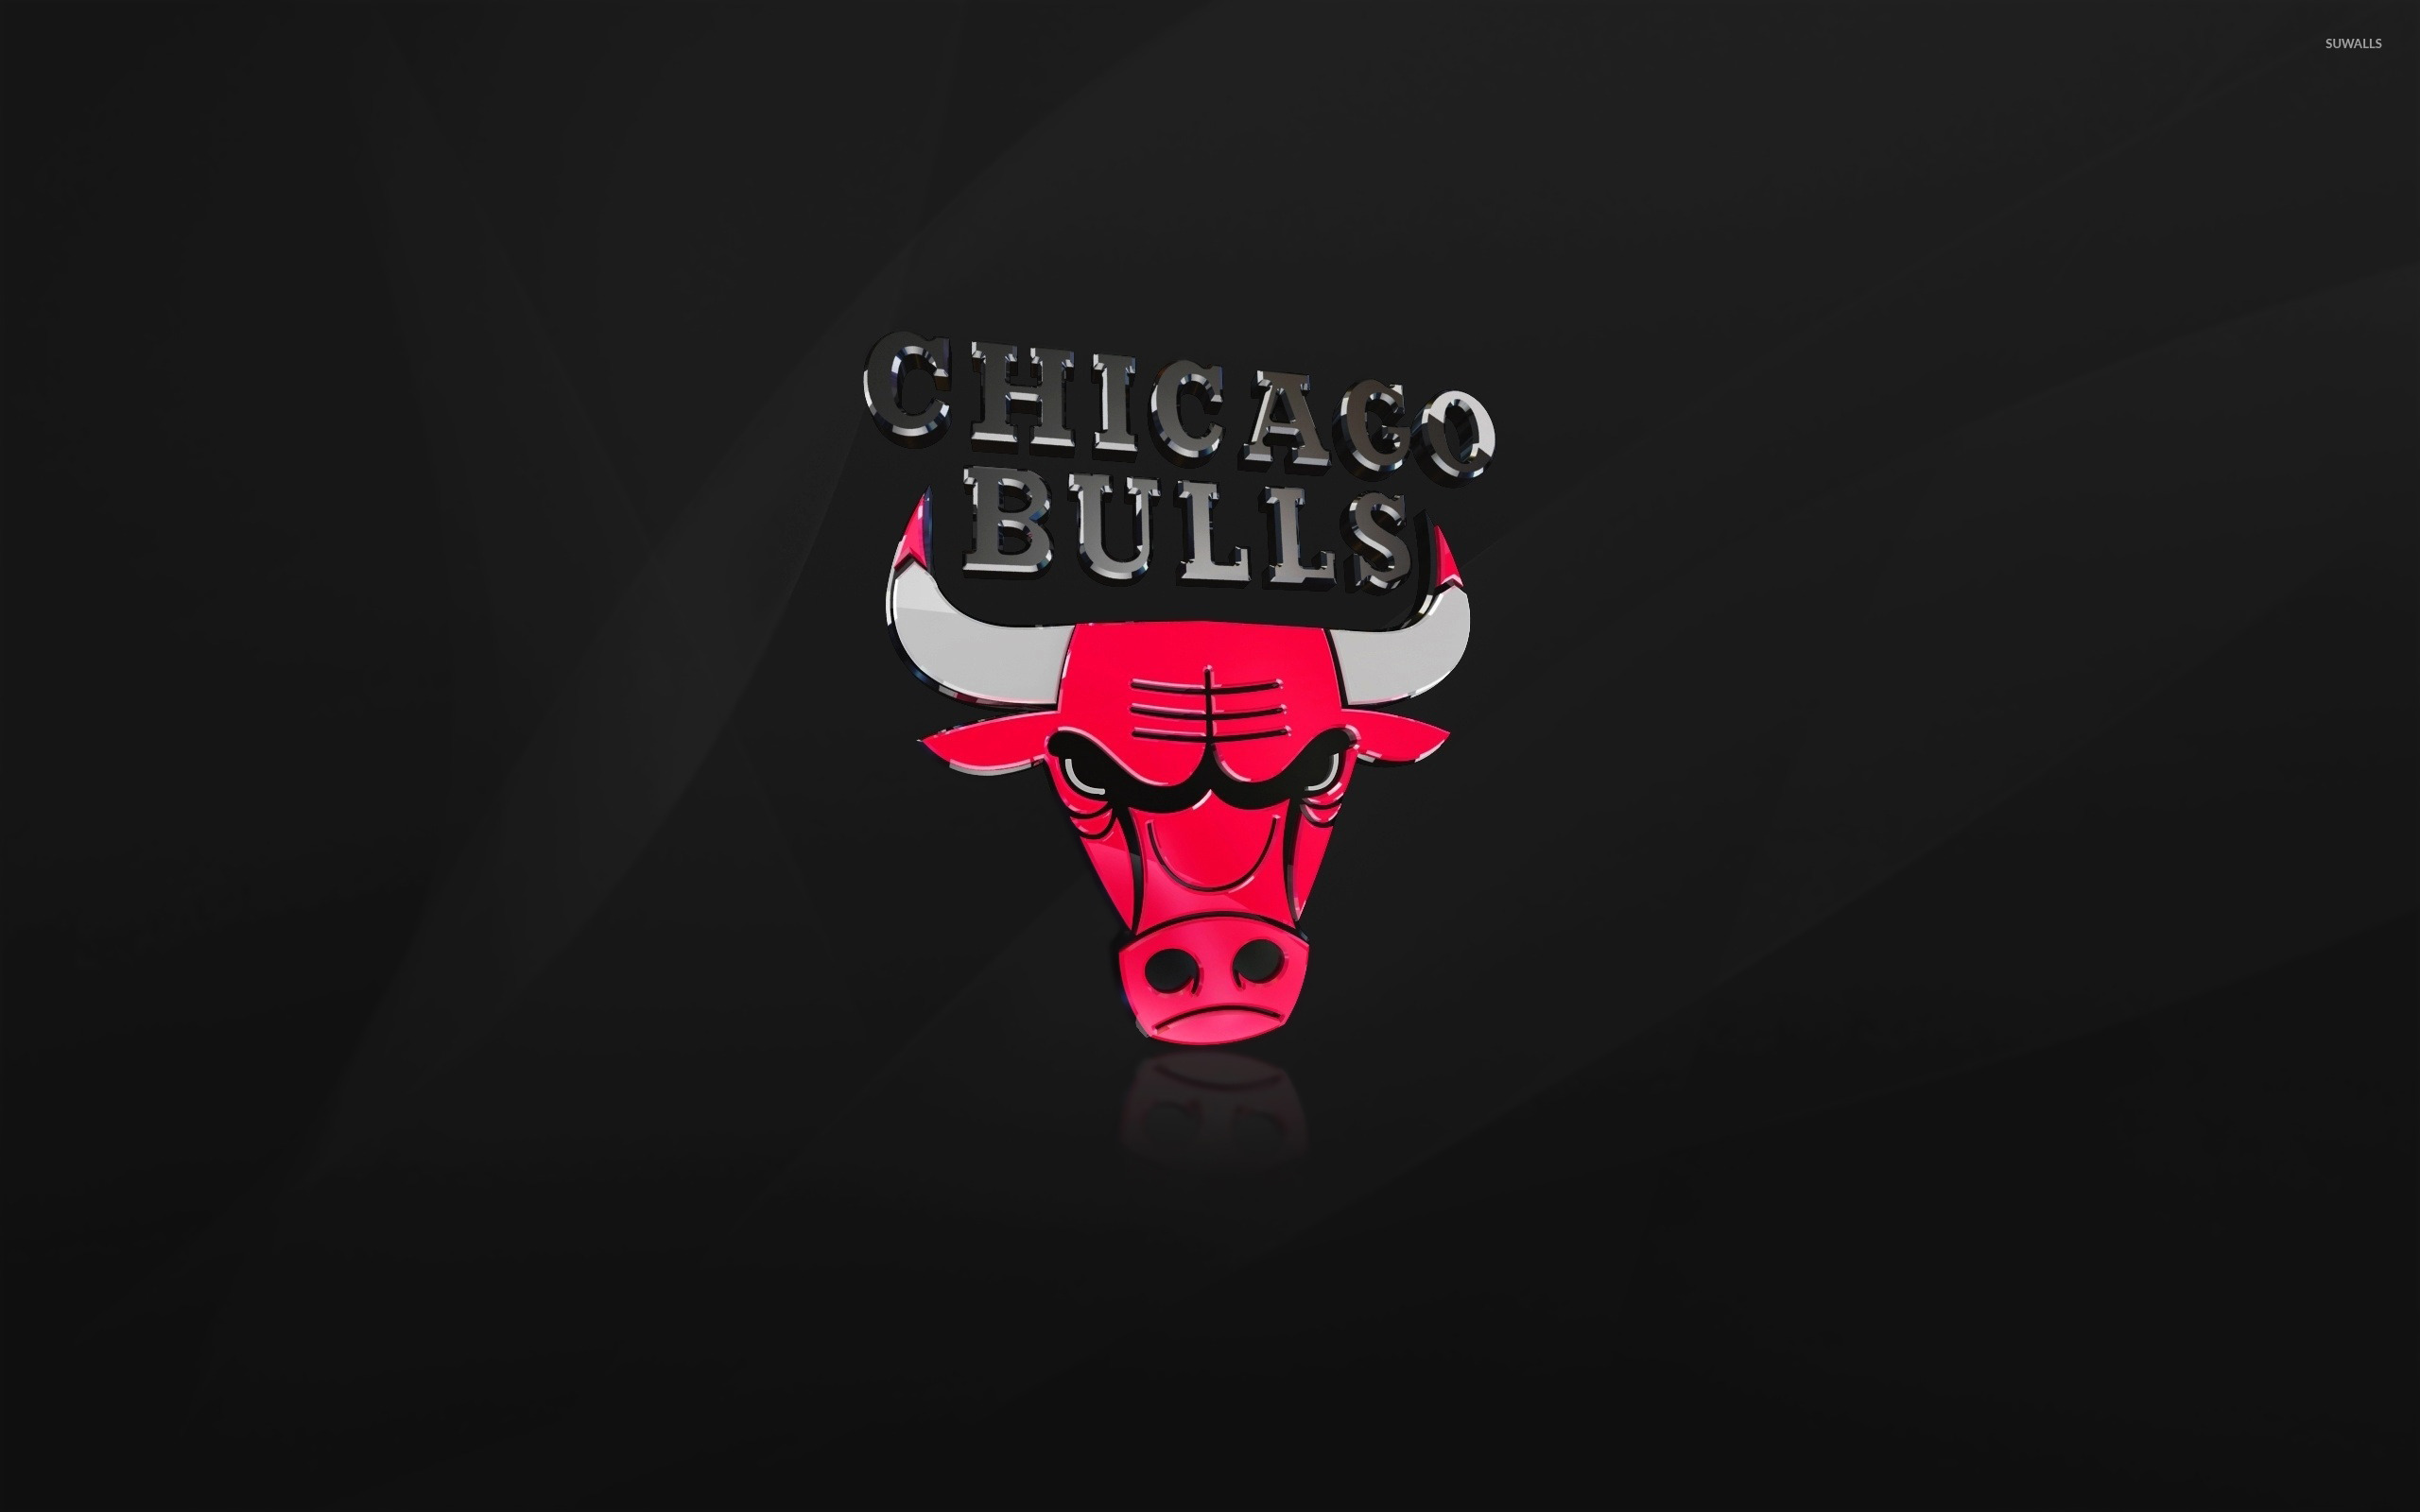 Shiny Chicago Bulls logo wallpaper.